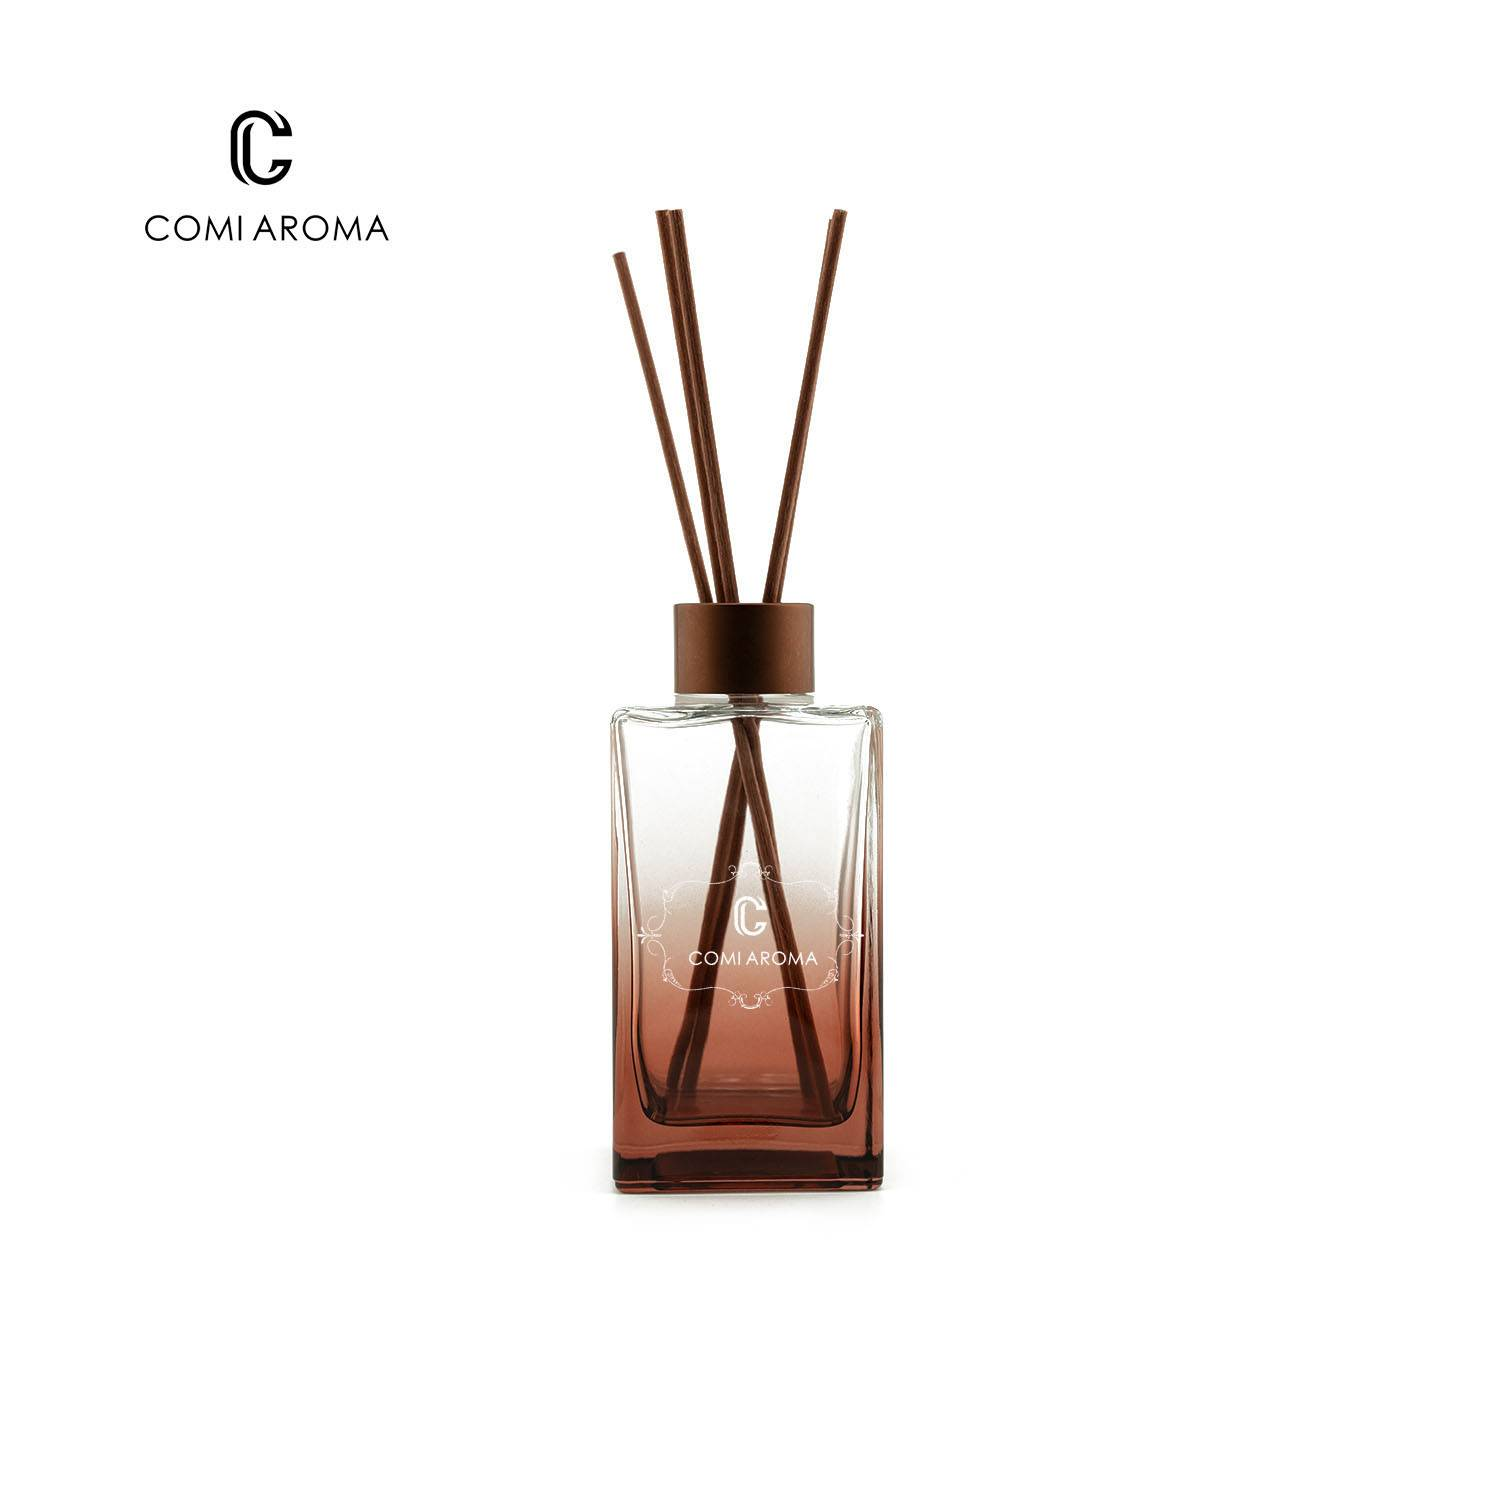 200ml Long Square Glass Diffuser Bottles Featured Image